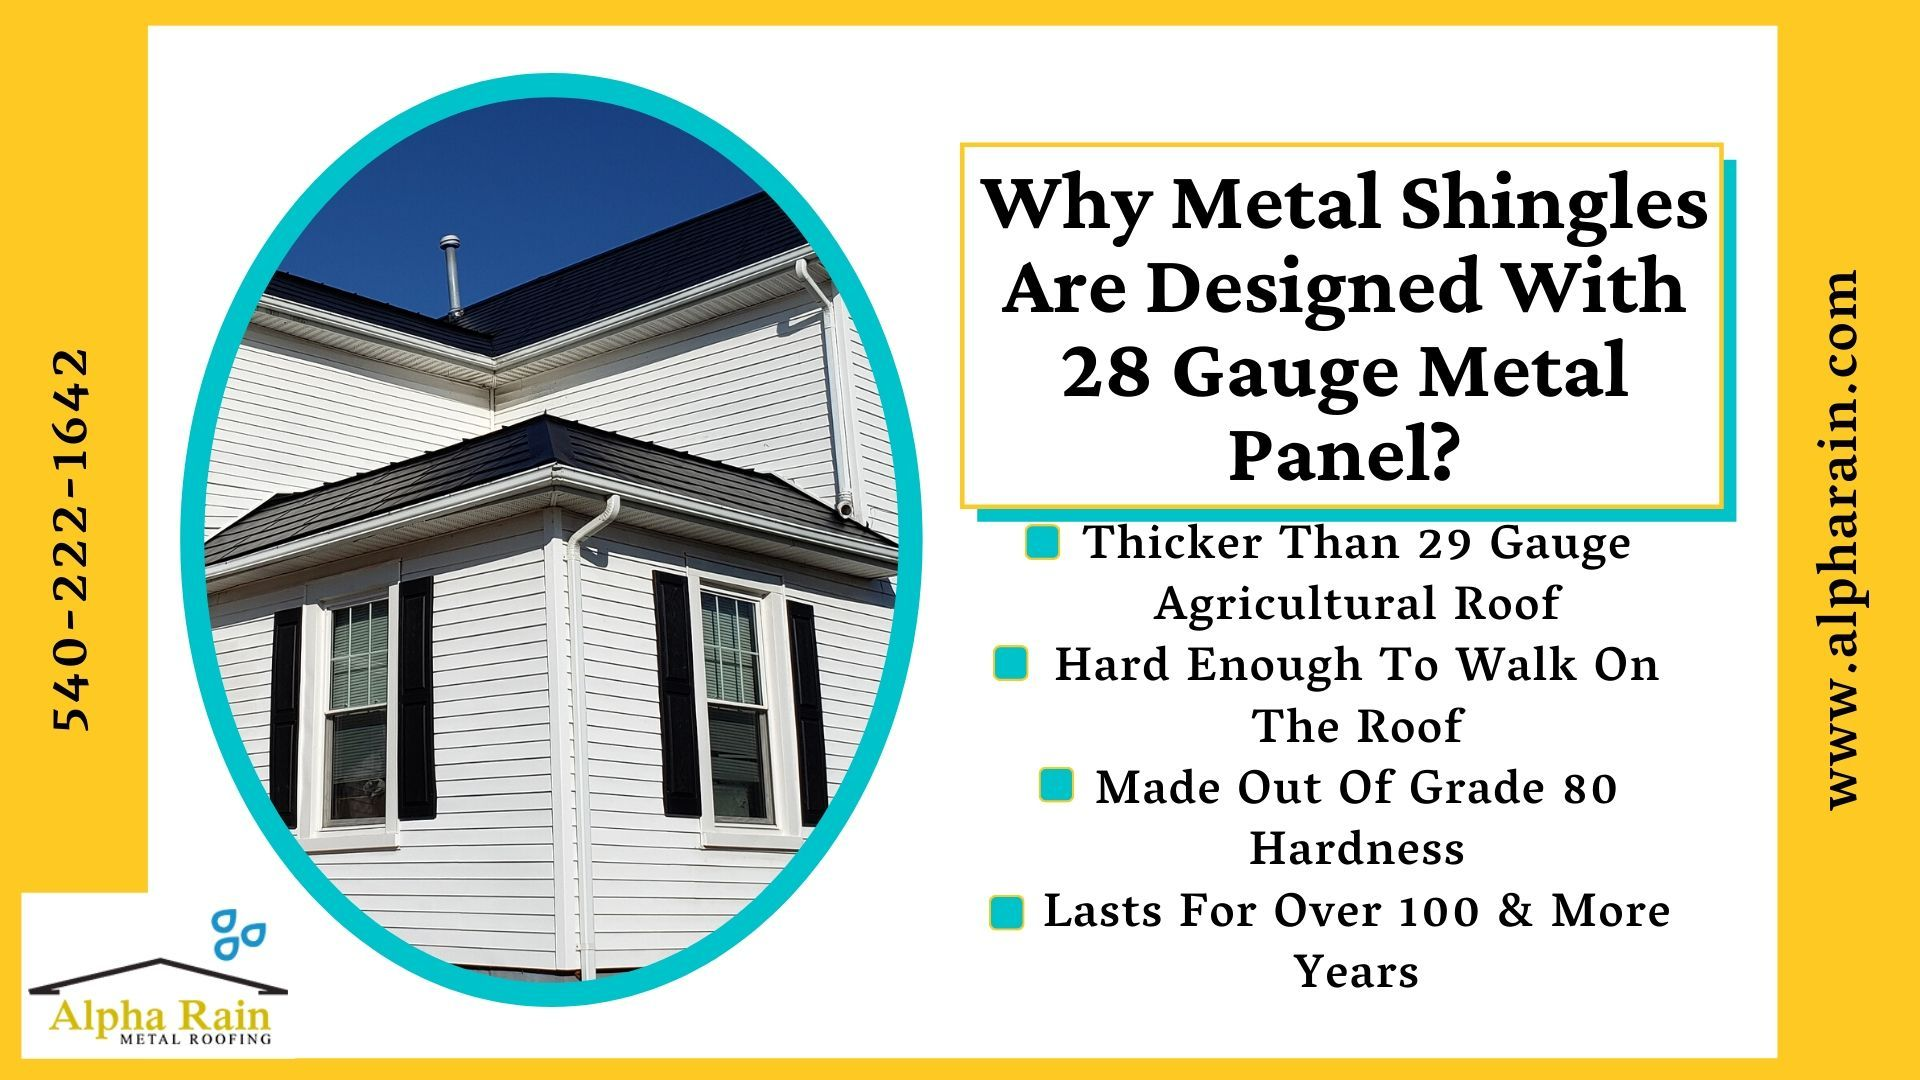 Compare Mid Grade Architectural Roof With 4ever Shingles In 2020 Metal Shingles Roof Architecture Shingling